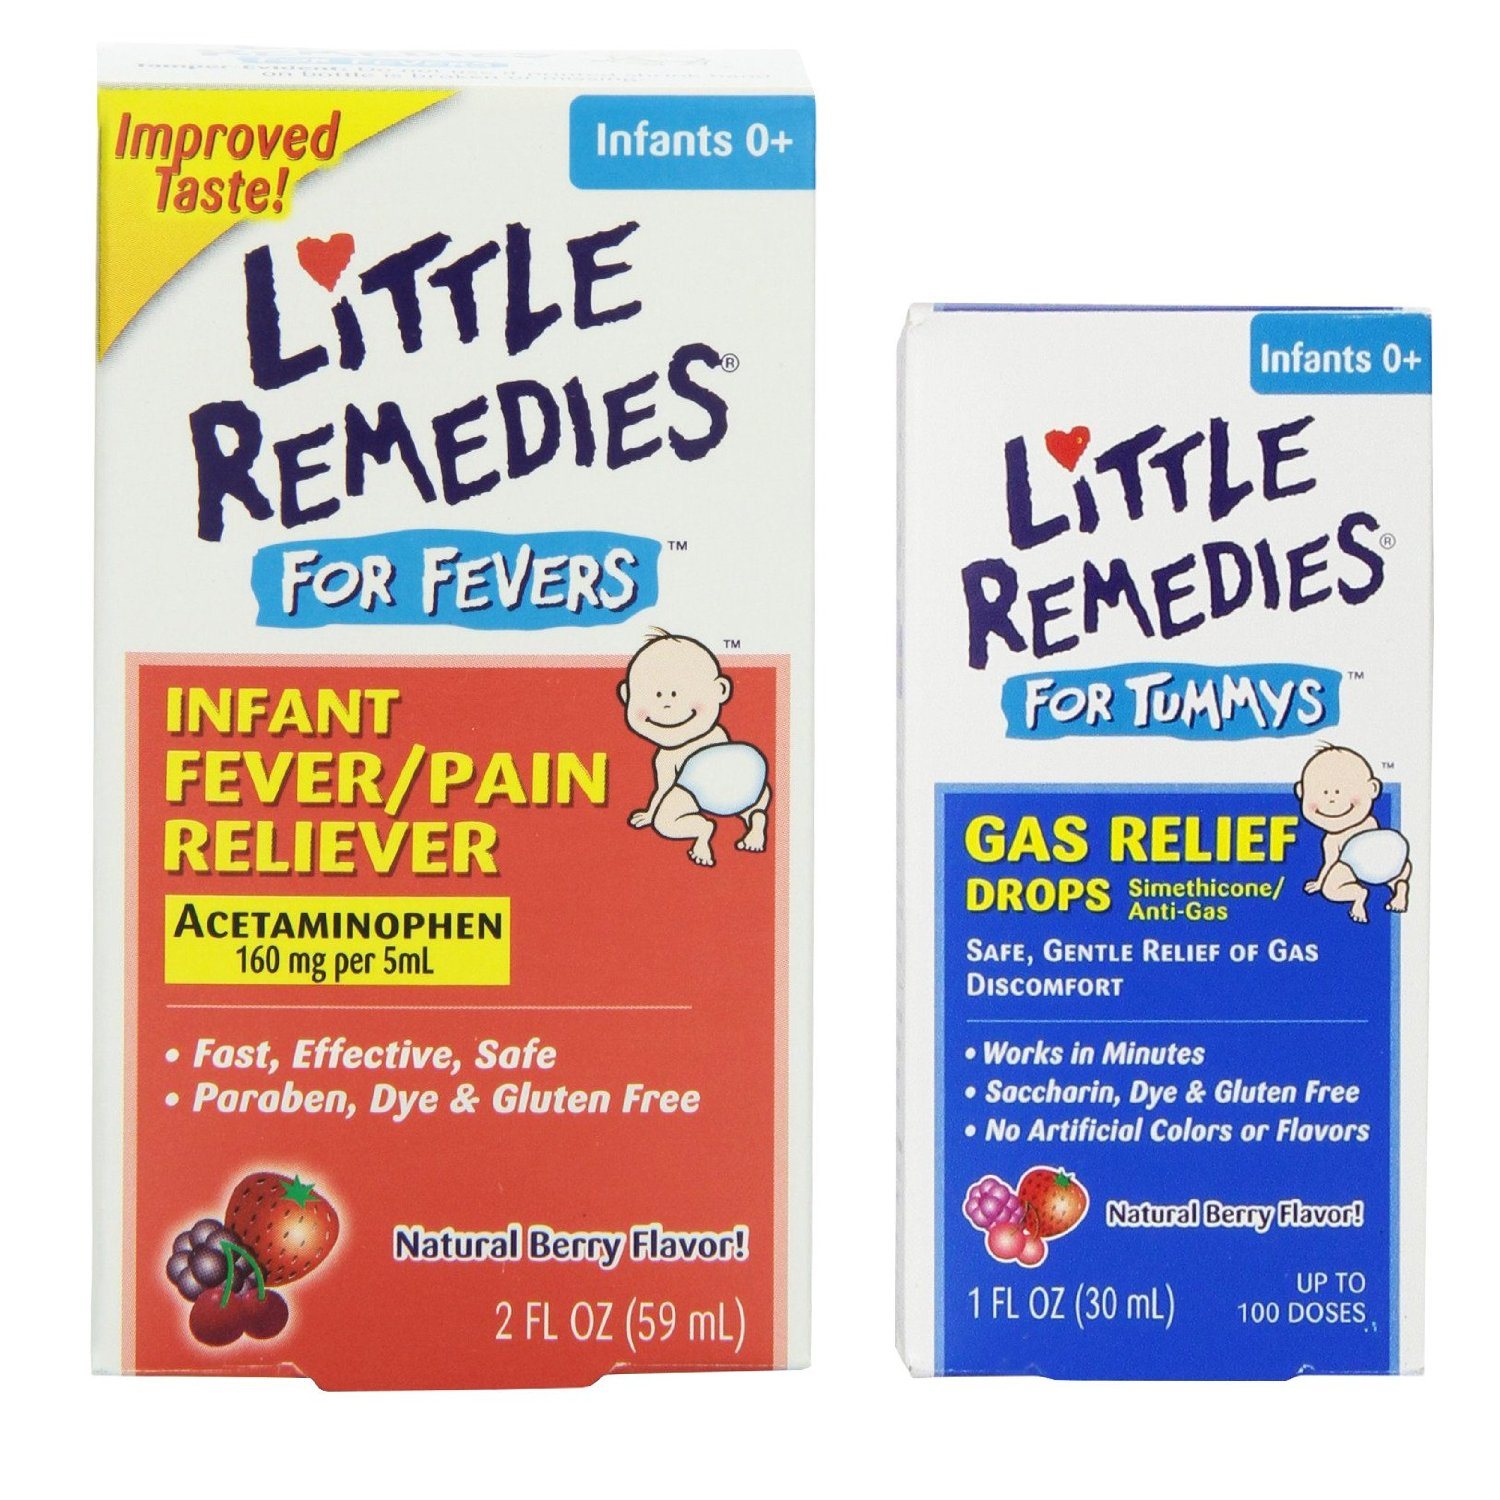 Little Remedies Fever Pain Reliever with Tummy Gas Relief Drops